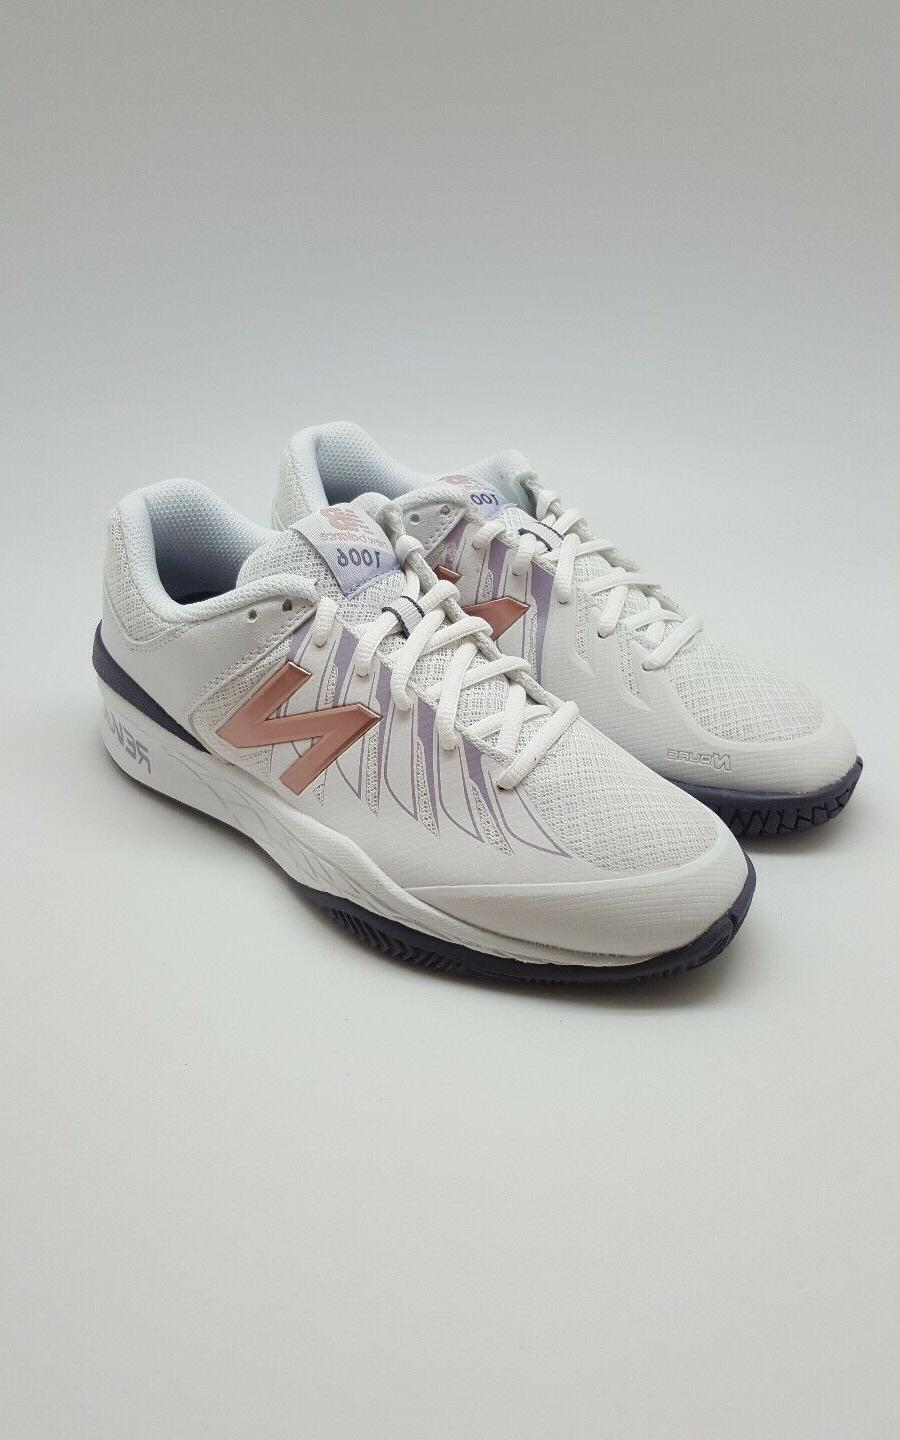 women s ankle high athletic running tennis